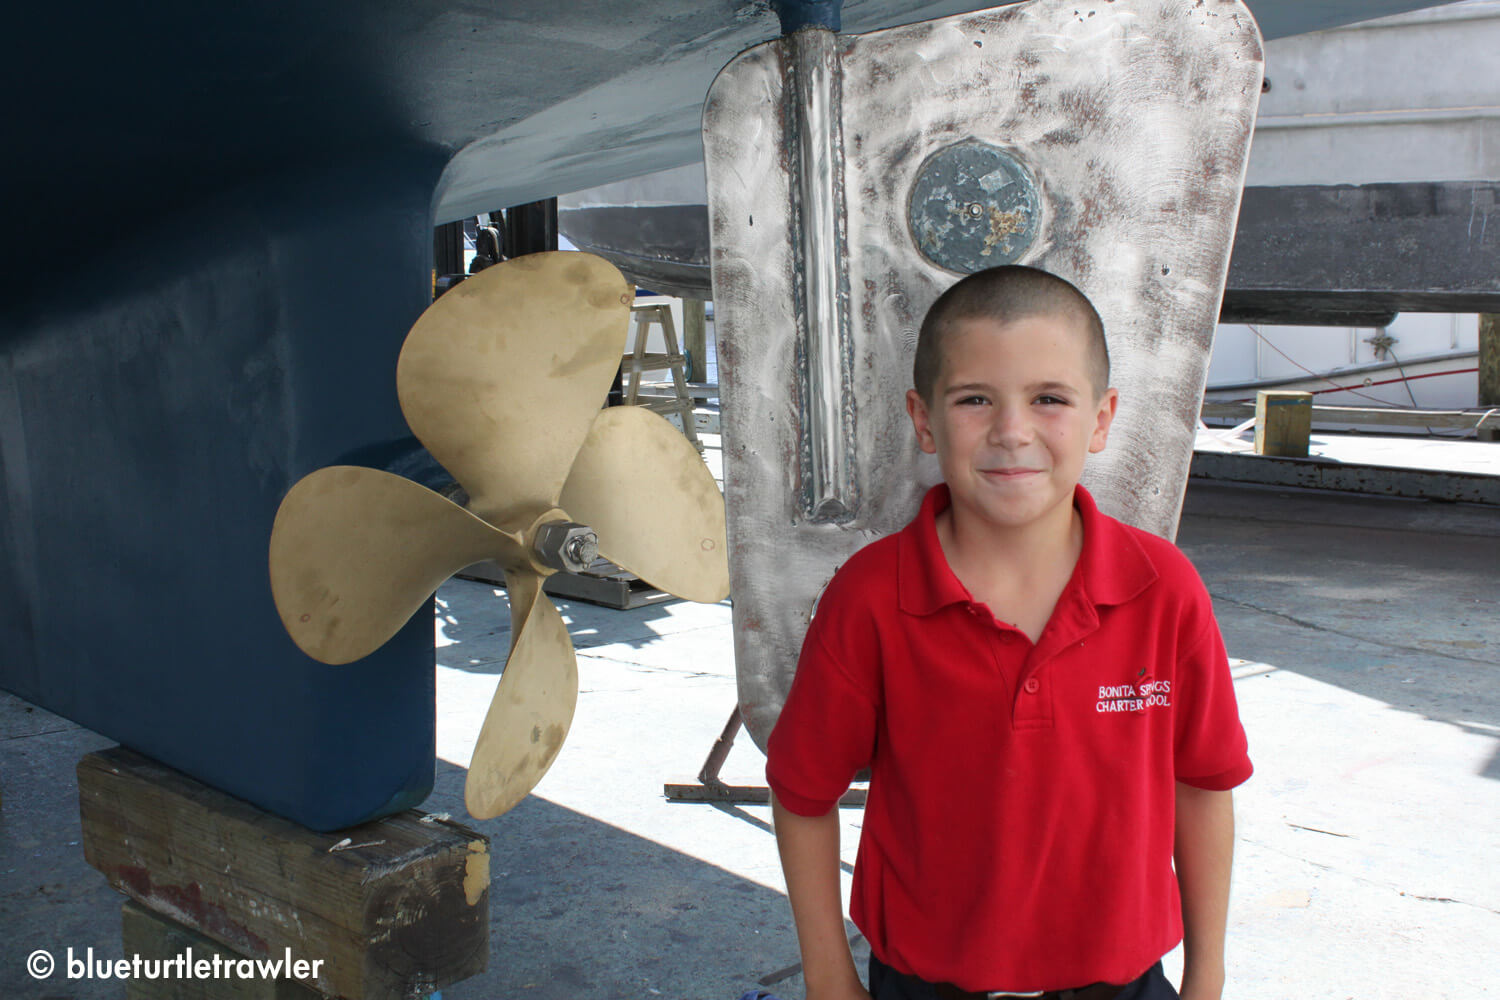 The boy (with fresh haircut) with the shiny prop and rudder